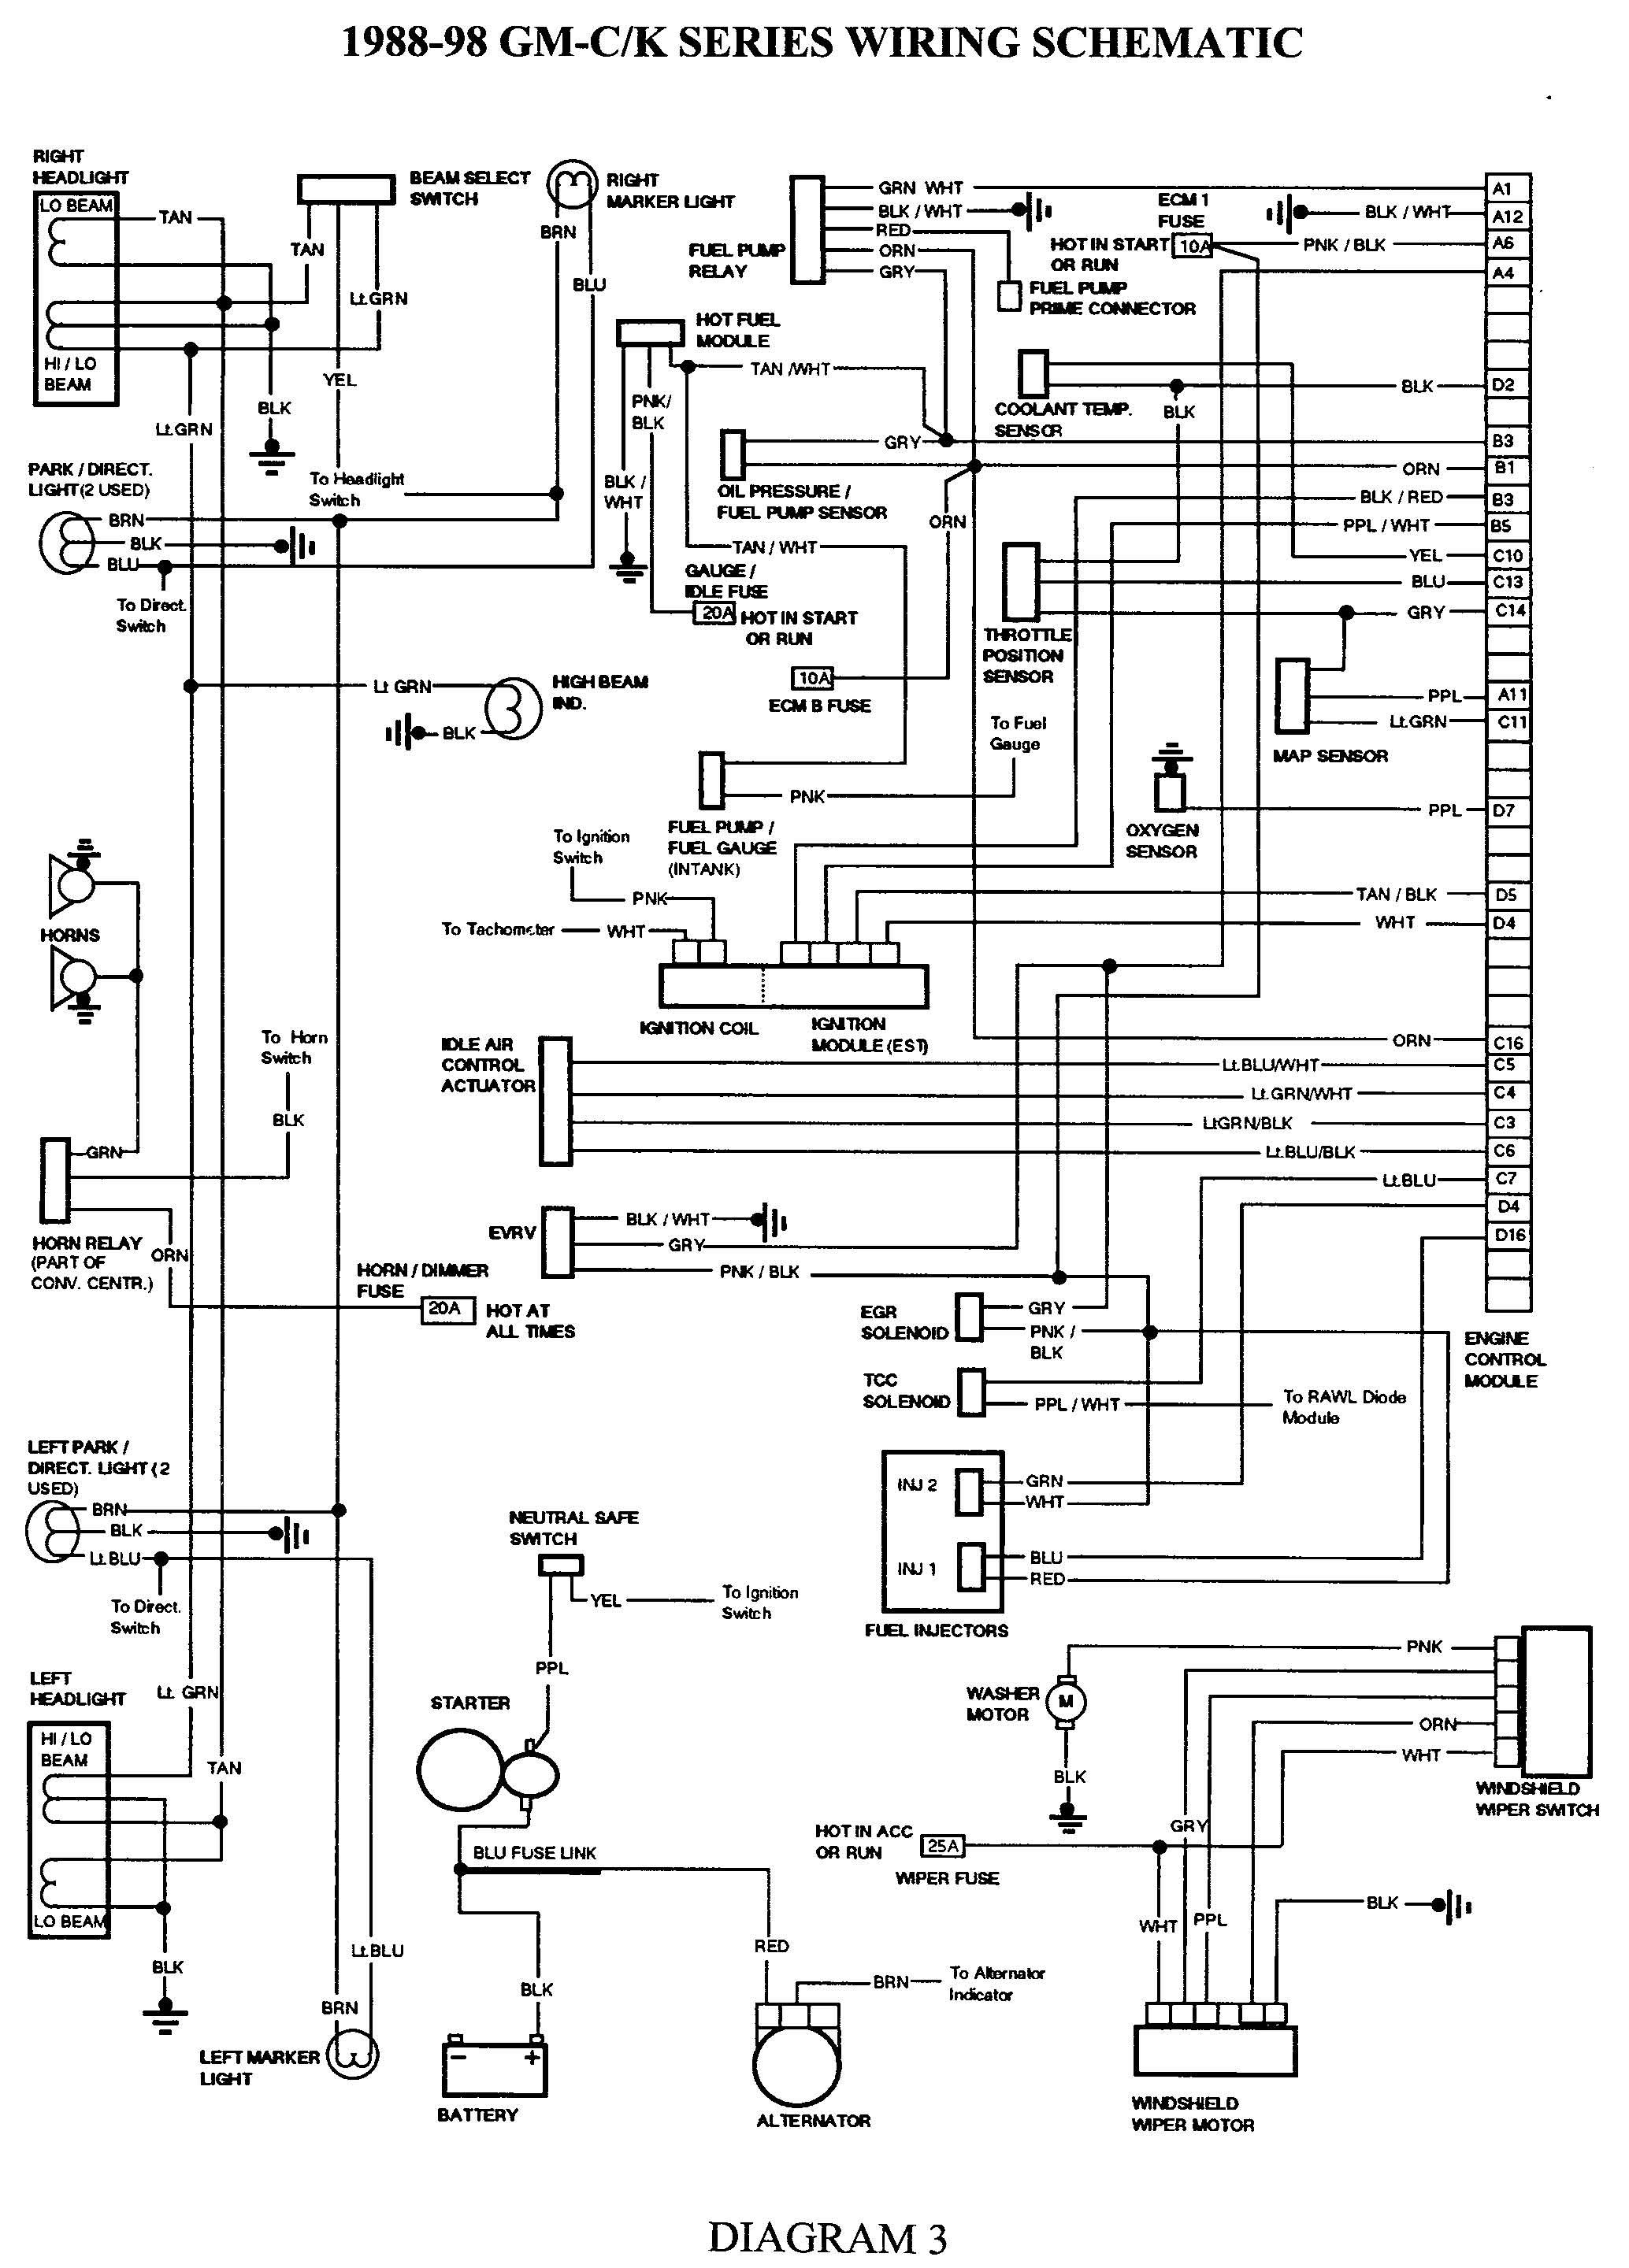 1980 Chevy 2500 Starter Wiring Diagram Guide And Troubleshooting Gm Engine Harness For 1979 Gmc Truck Diagrams On 88 98 Kc Rh Pinterest Com 350